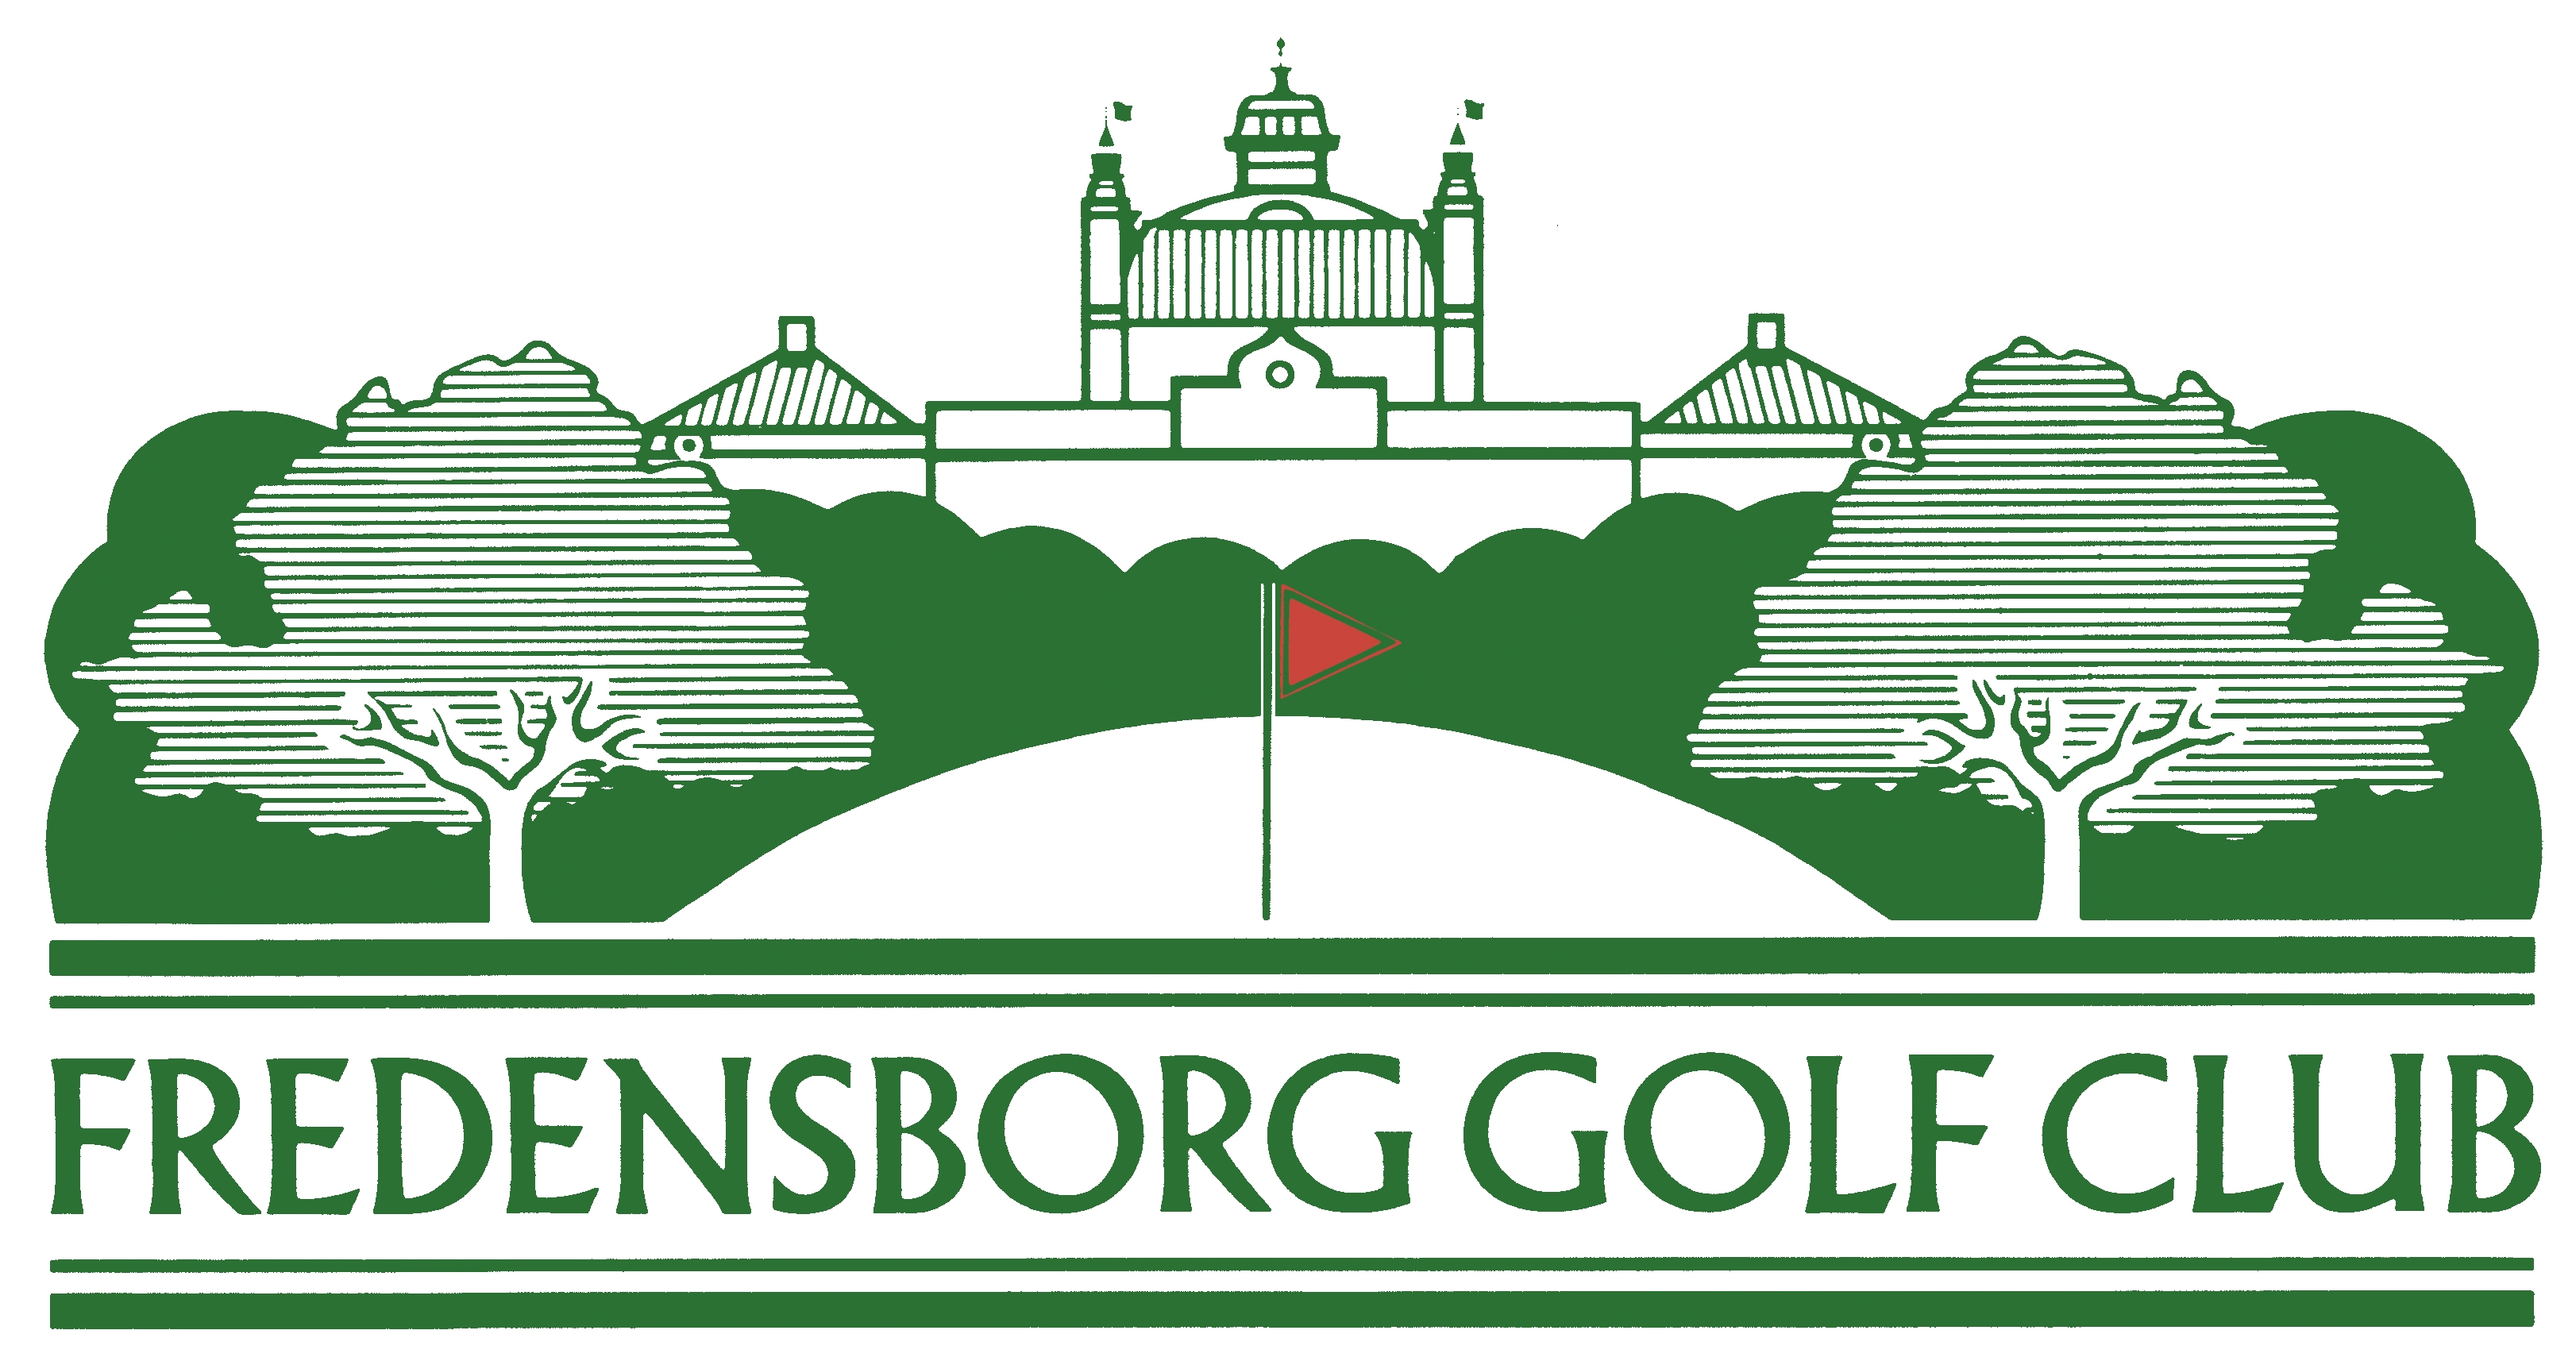 Fredensborg Golf Club